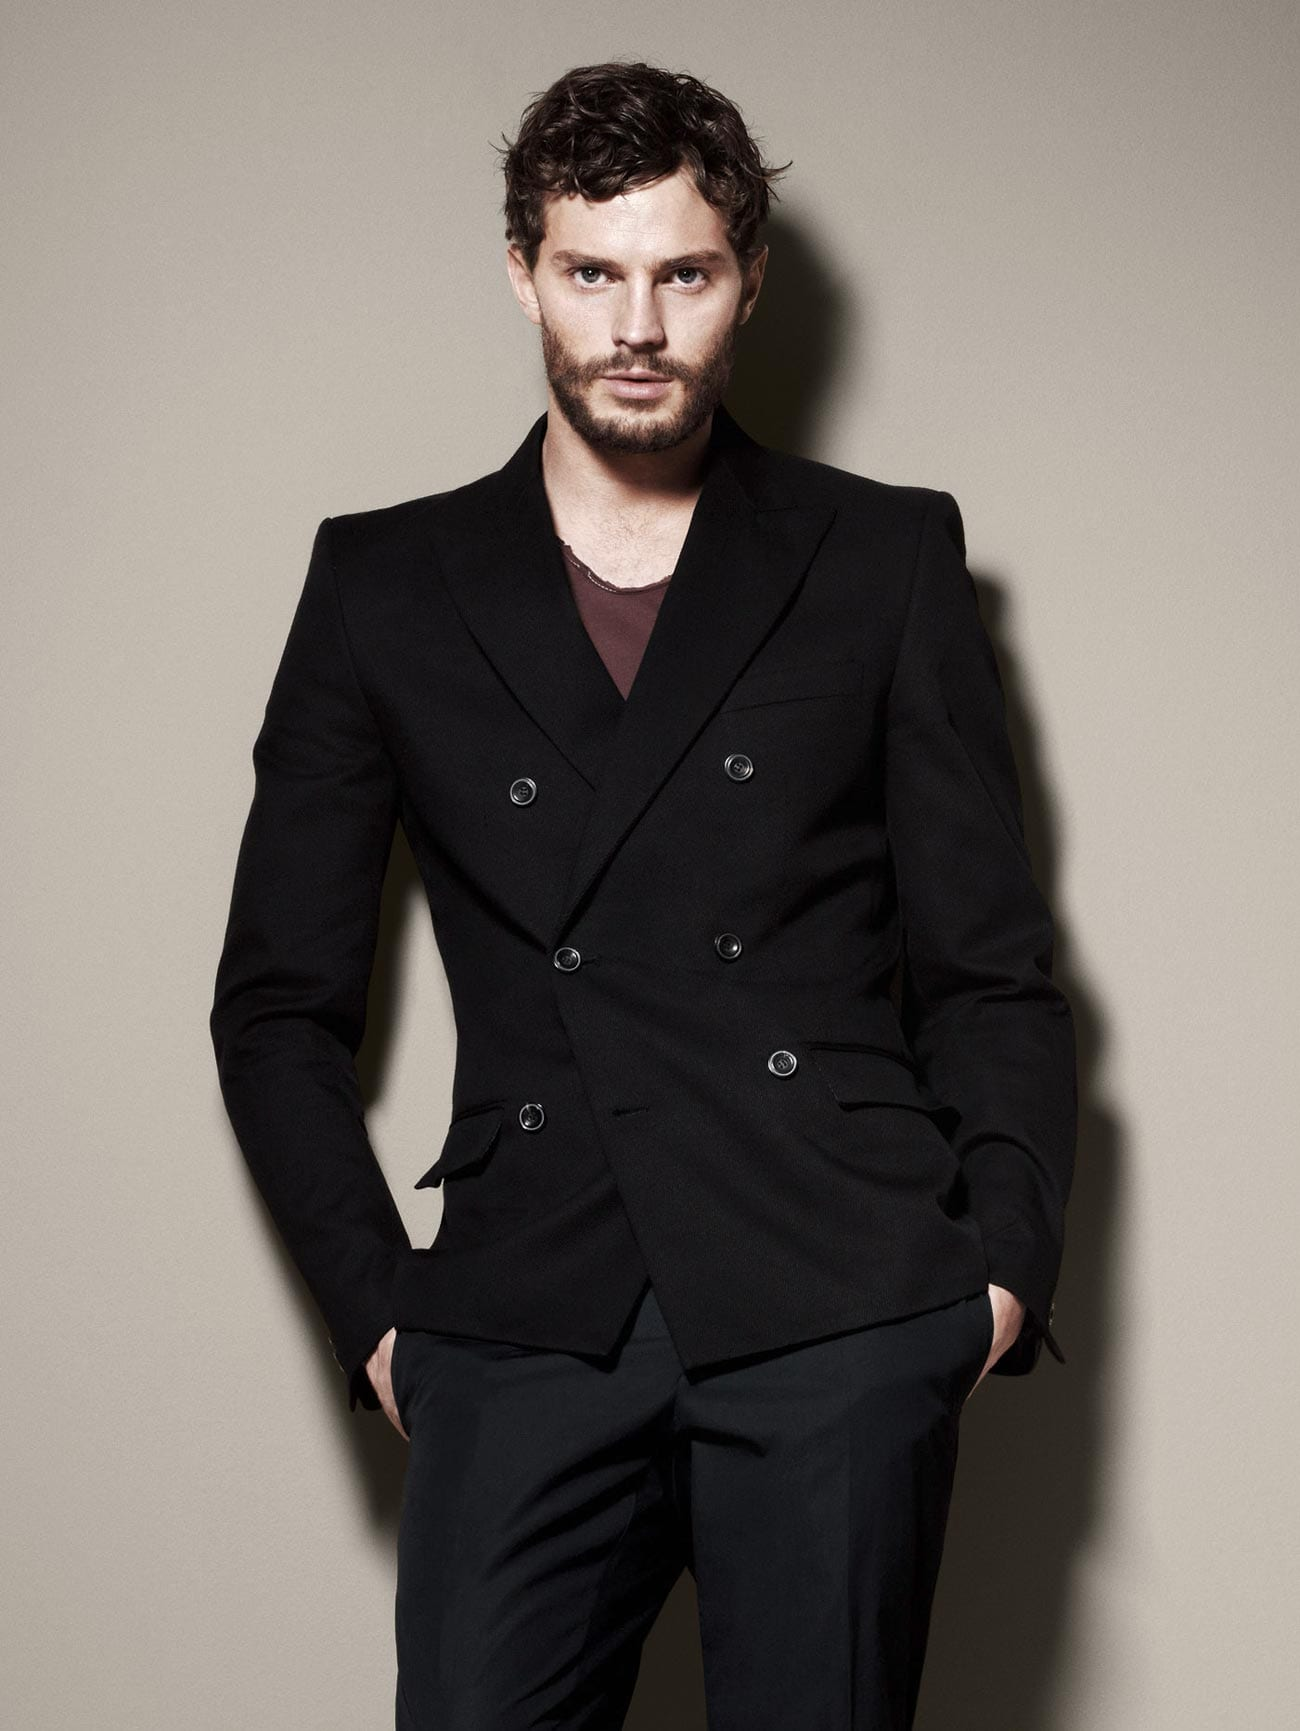 jamie-dornan-medium-stubble-beard